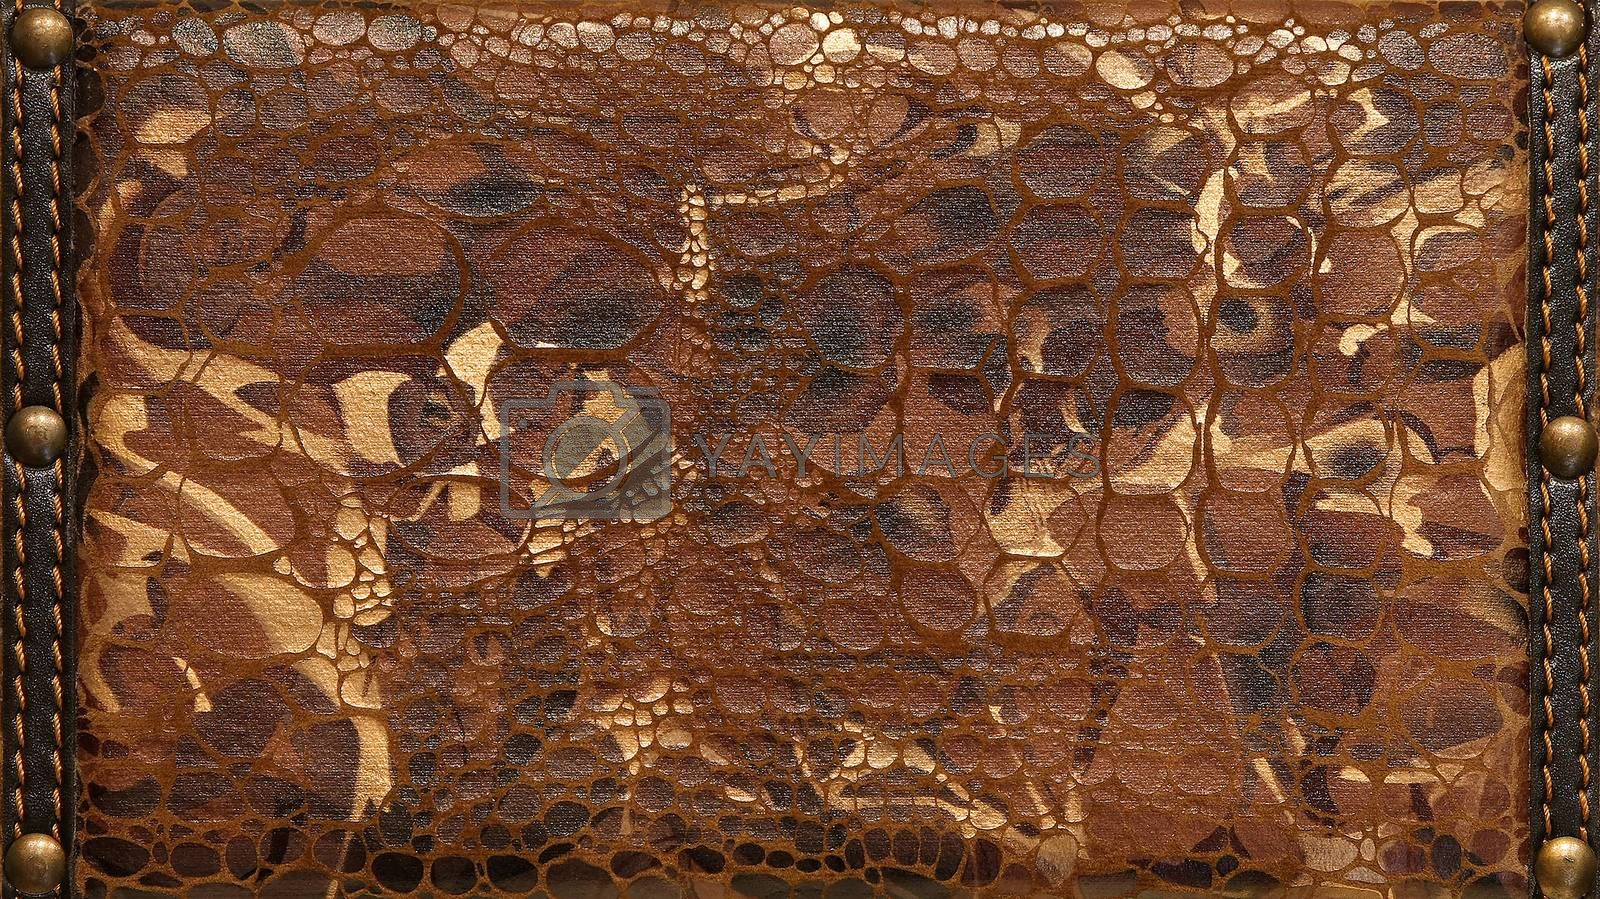 Detailed brown leather texture with decorative ornaments